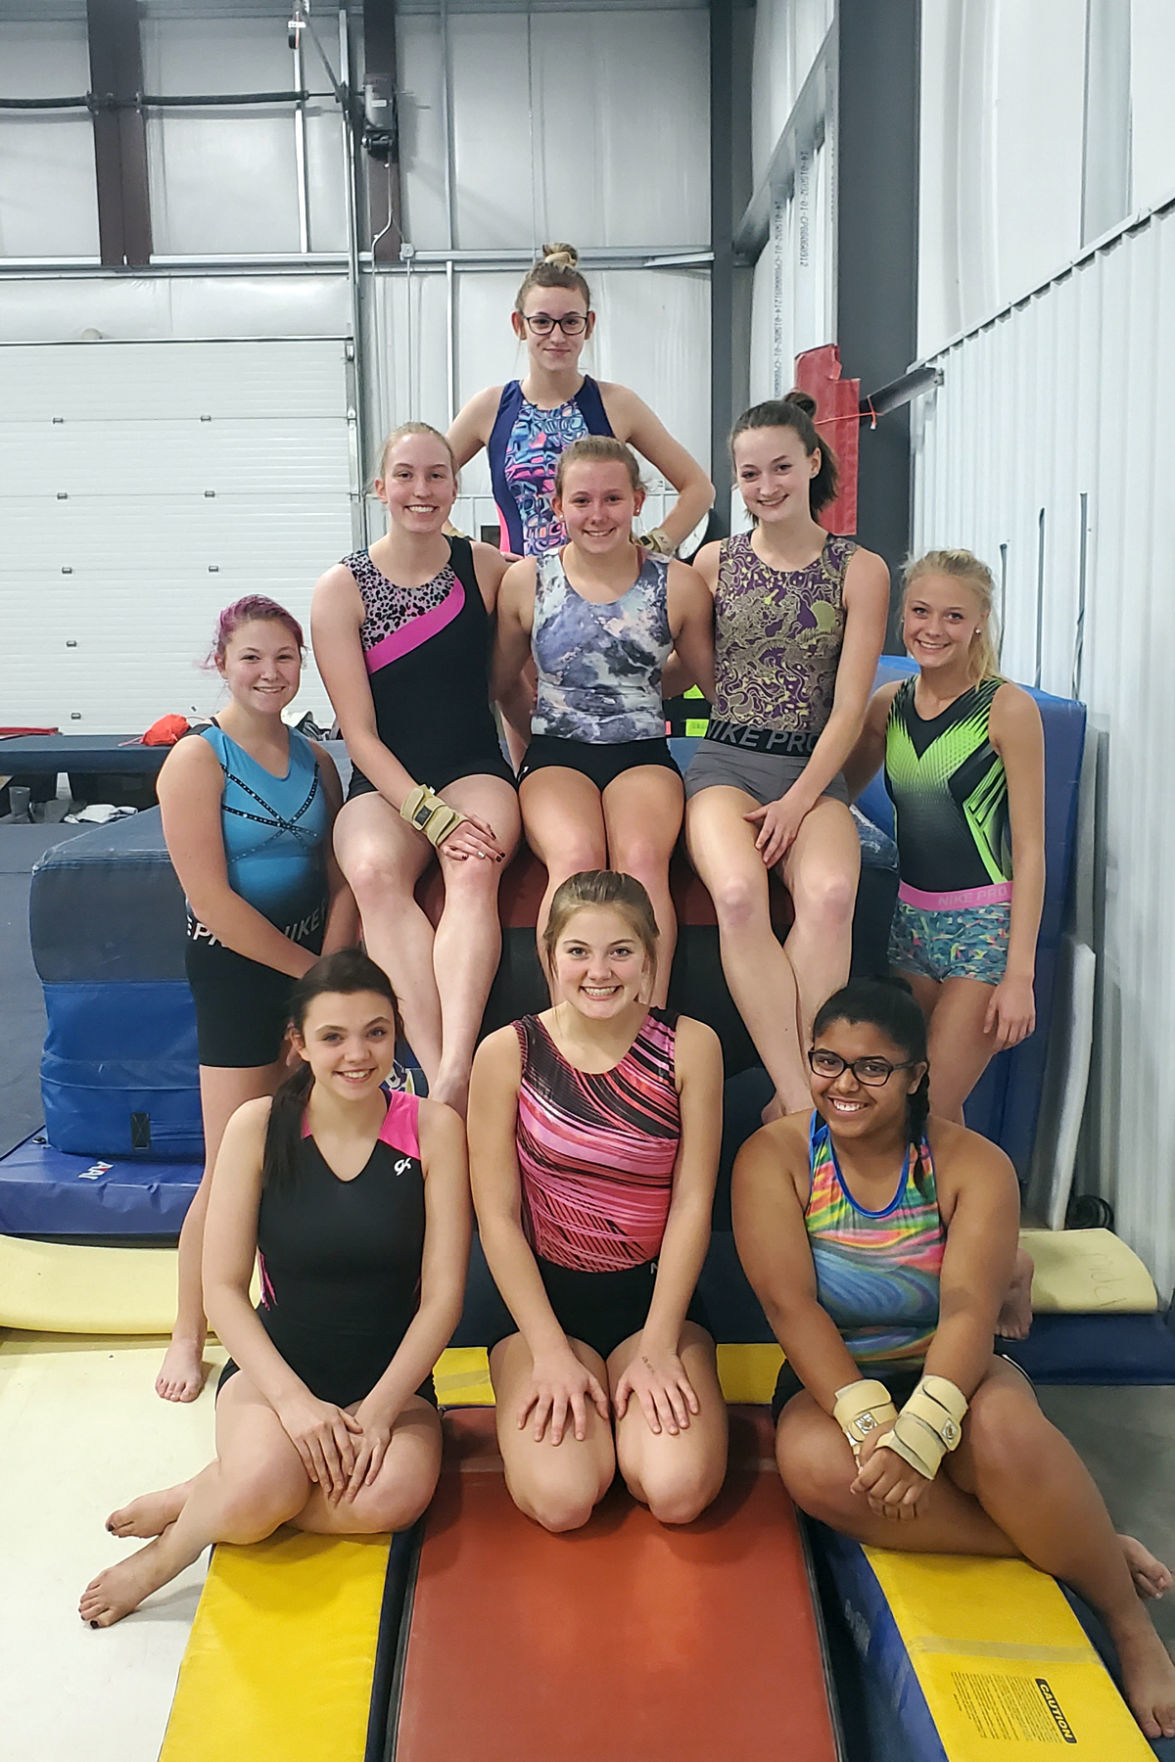 Menomonie gymnastics 2019-20 team photo